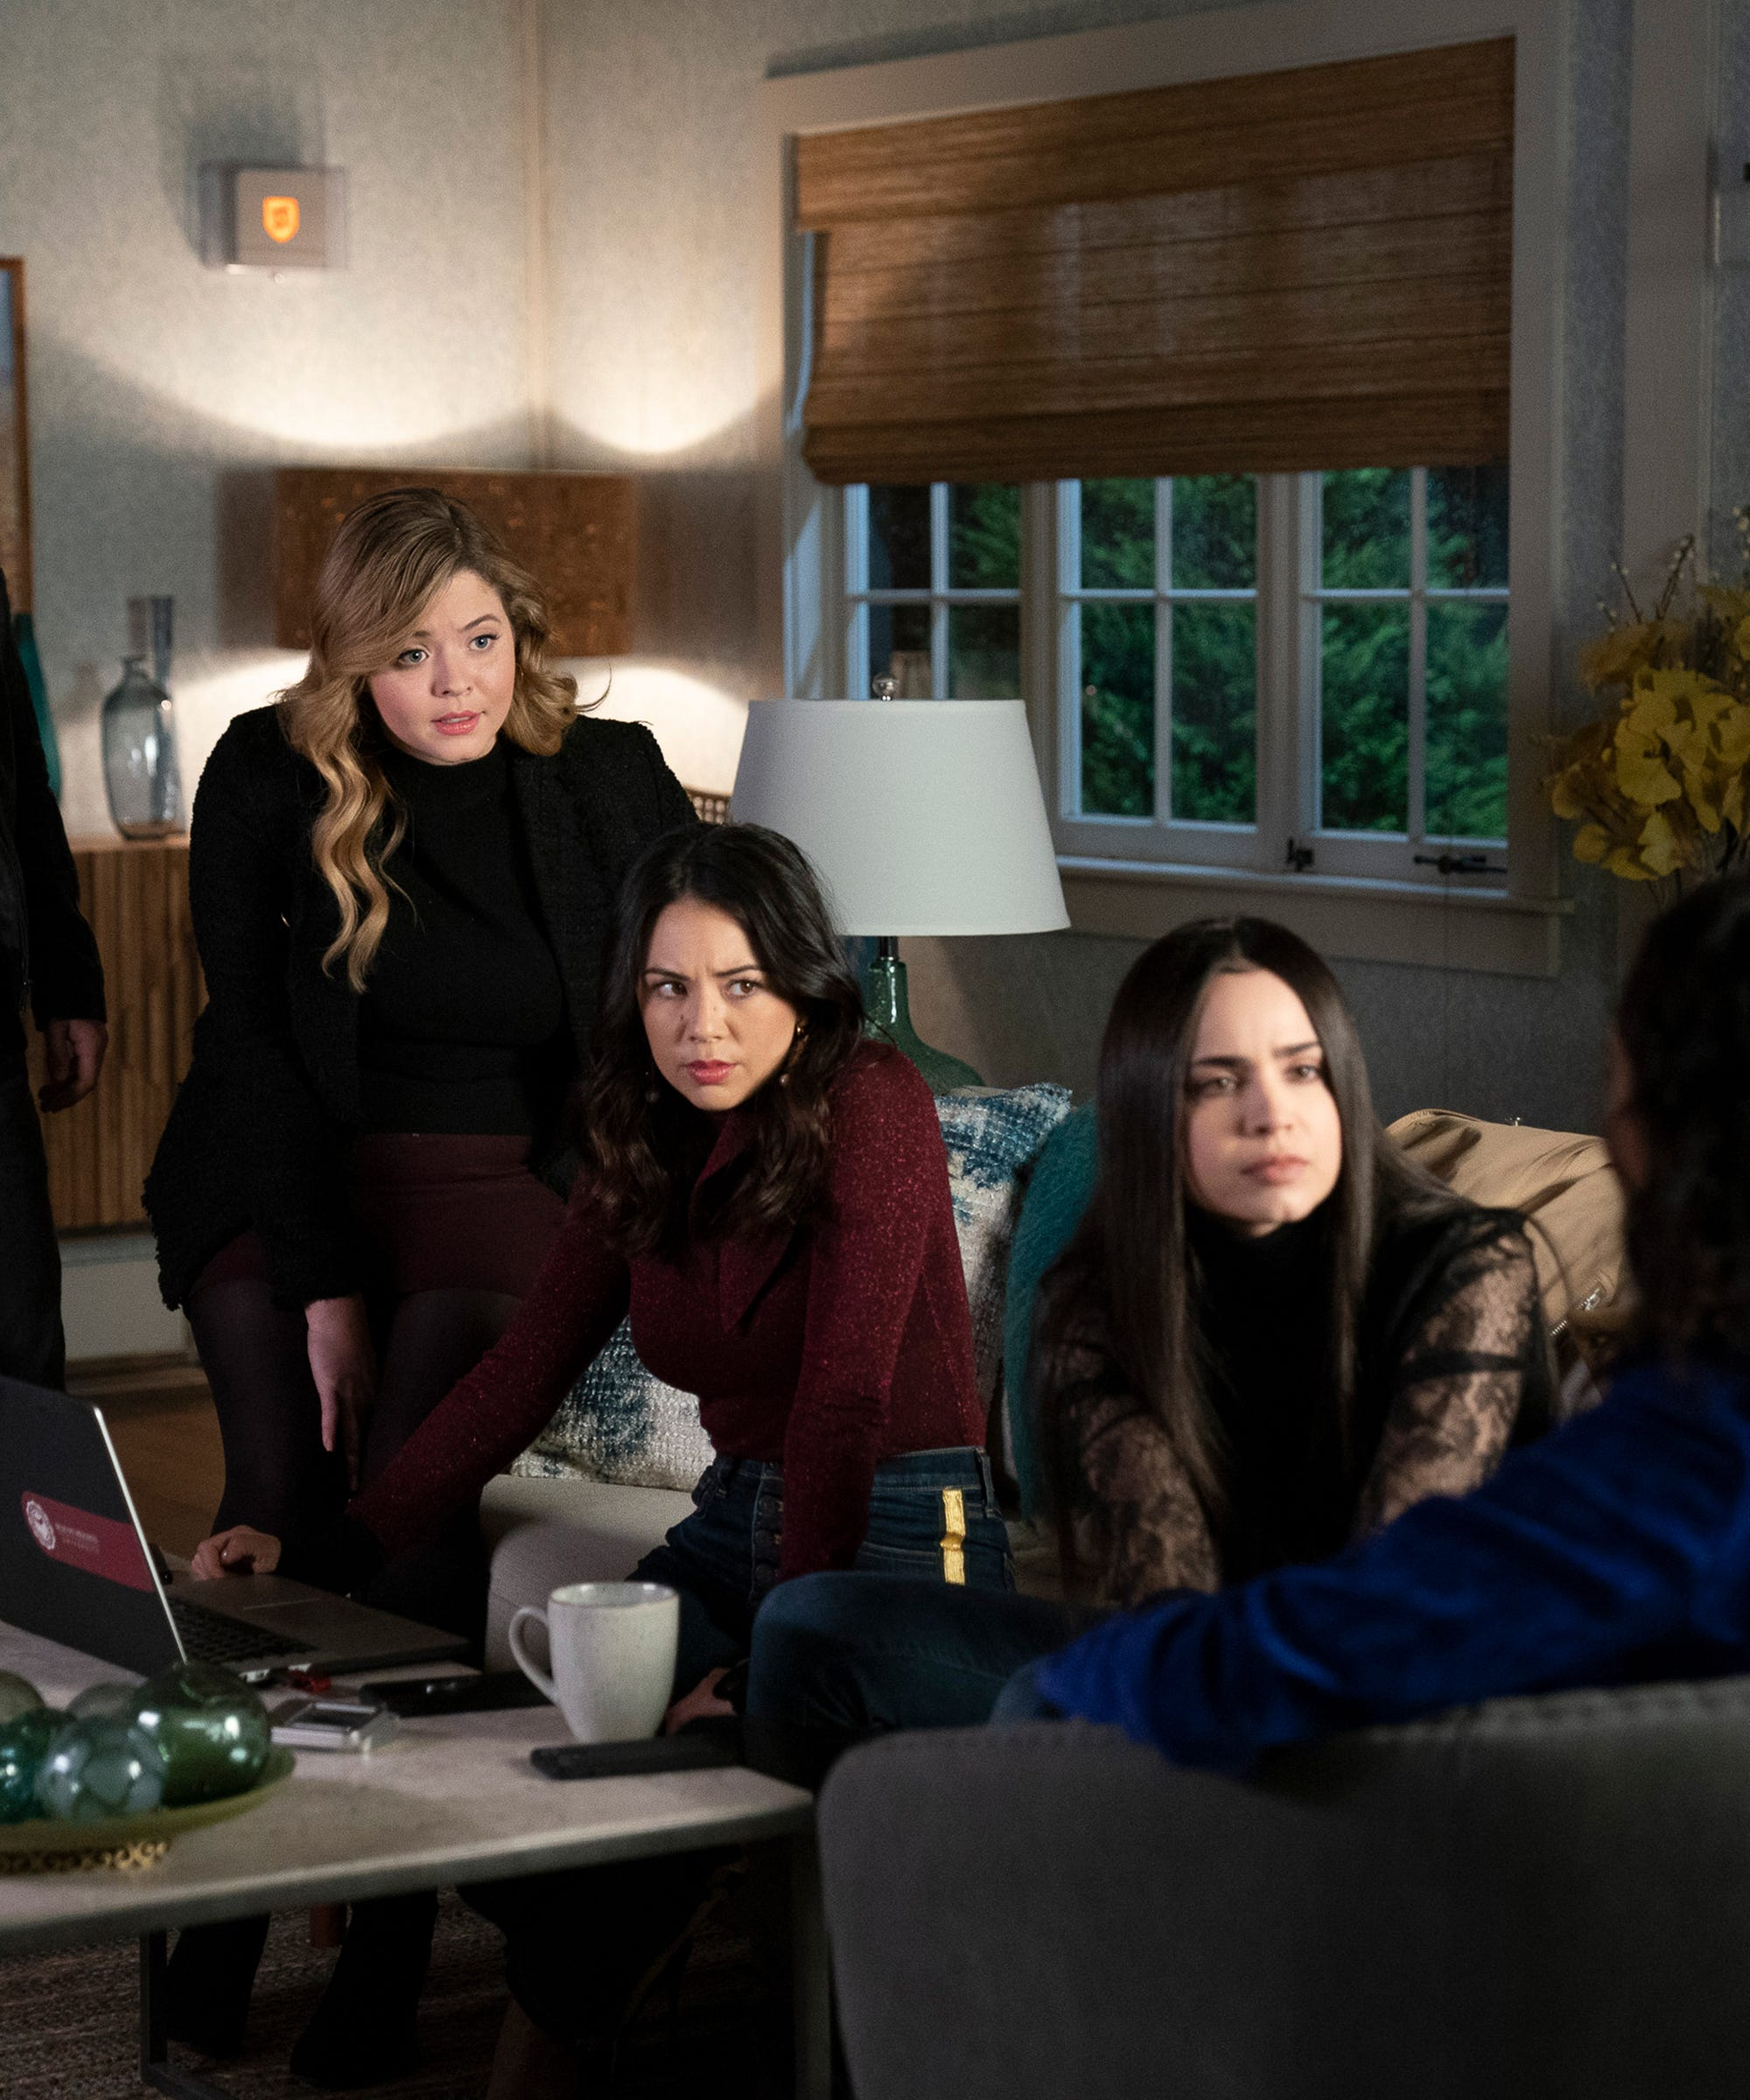 Is The Professor The New A? The PLL: The Perfectionists Creator Weighs In On That Twisted Finale